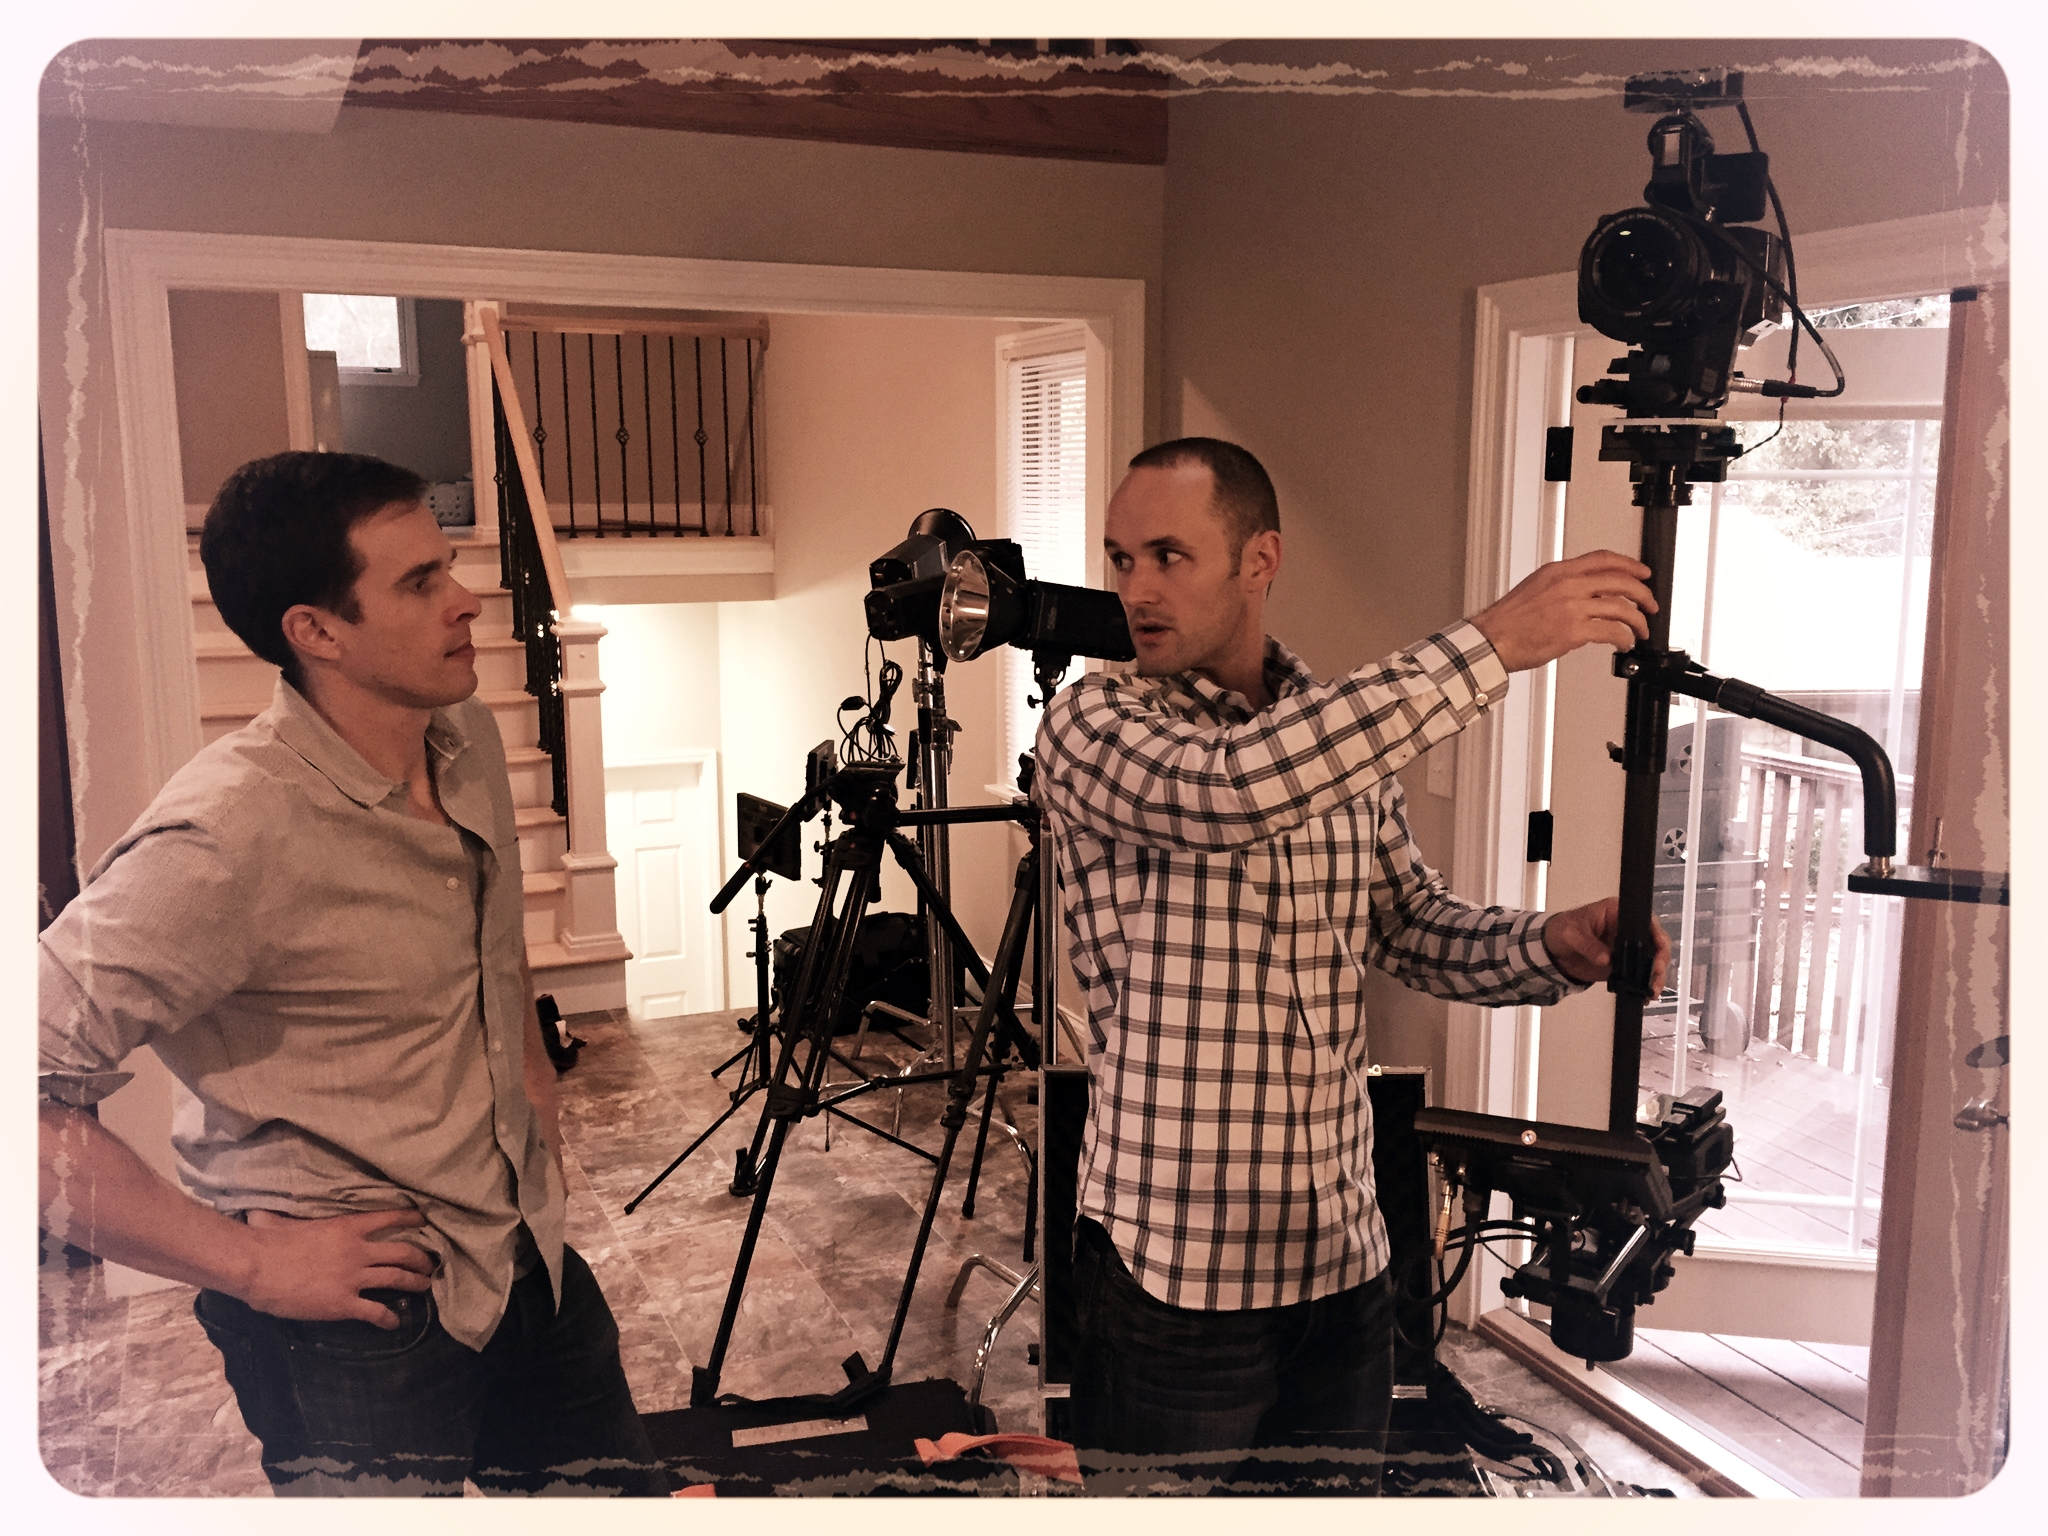 Our Director of Photography (Michael Fulcher) and Cinematographer (Matt Sharpe) discussing shots to be captured via our Steadicam rig.